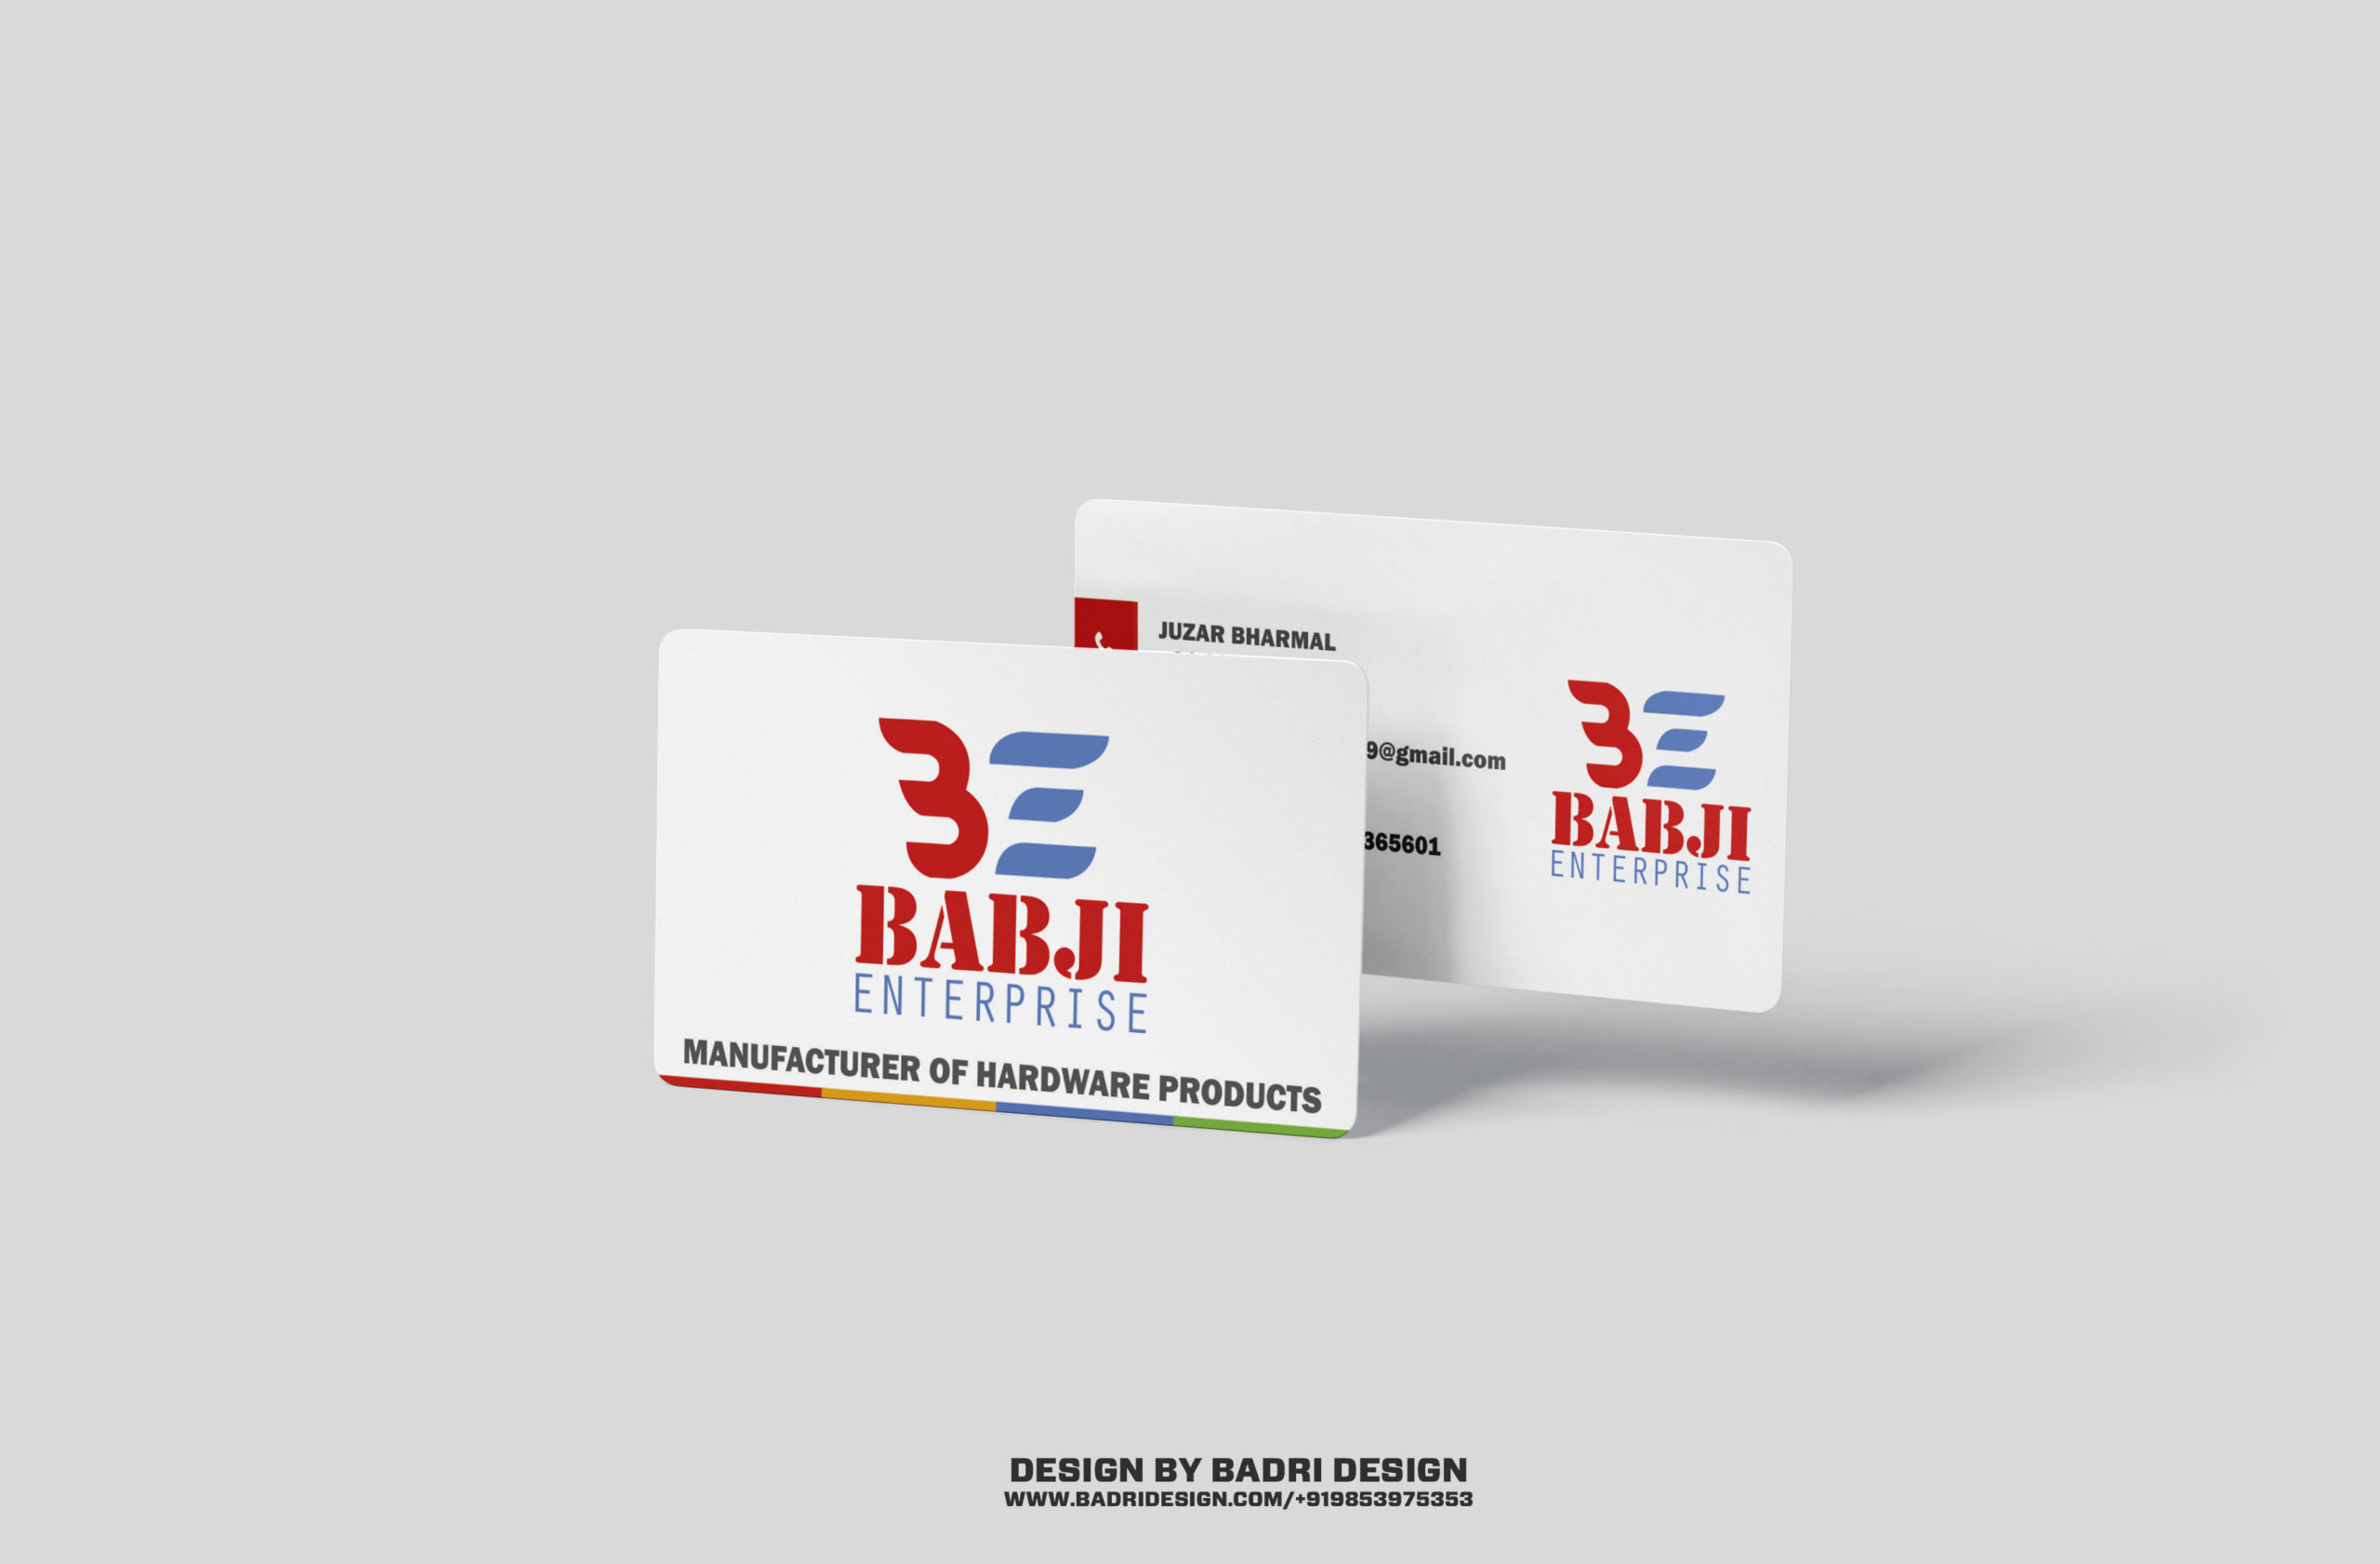 Babji Enterprise manufacturing company business card design by Badri Design